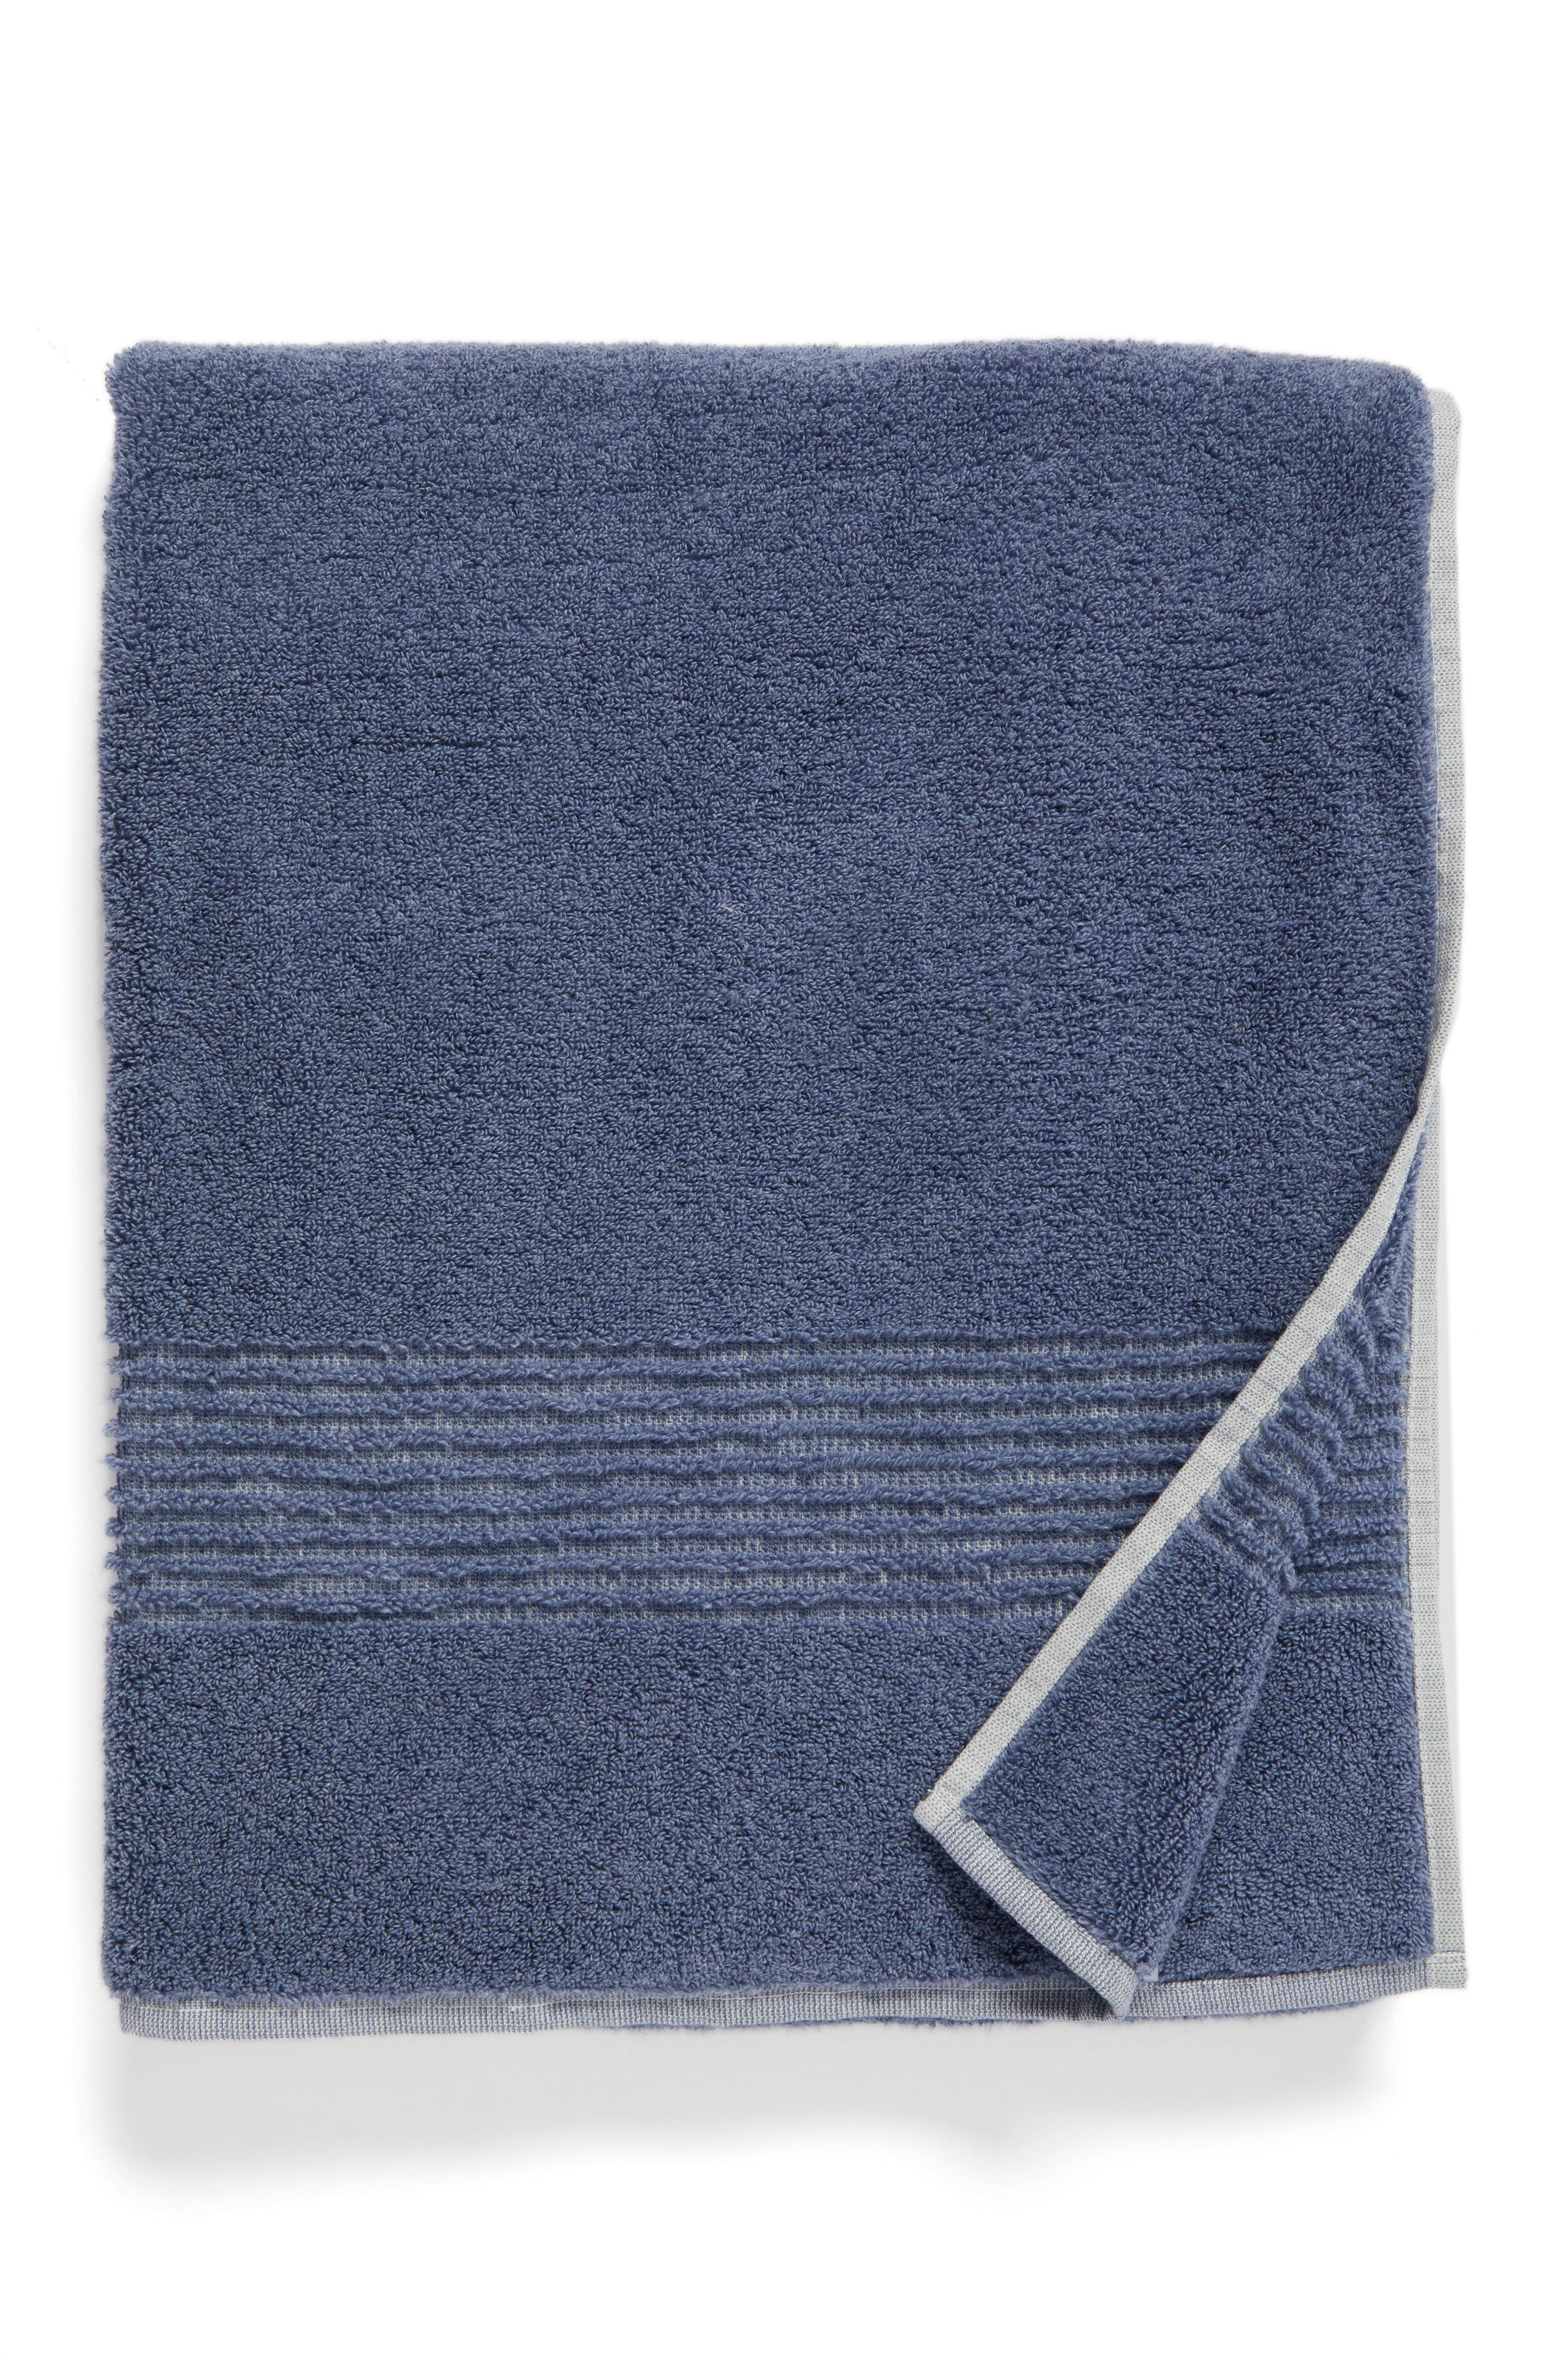 Main Image - Nordstrom at Home Organic Hydrocotton Heathered Bath Towel (2 for $49)